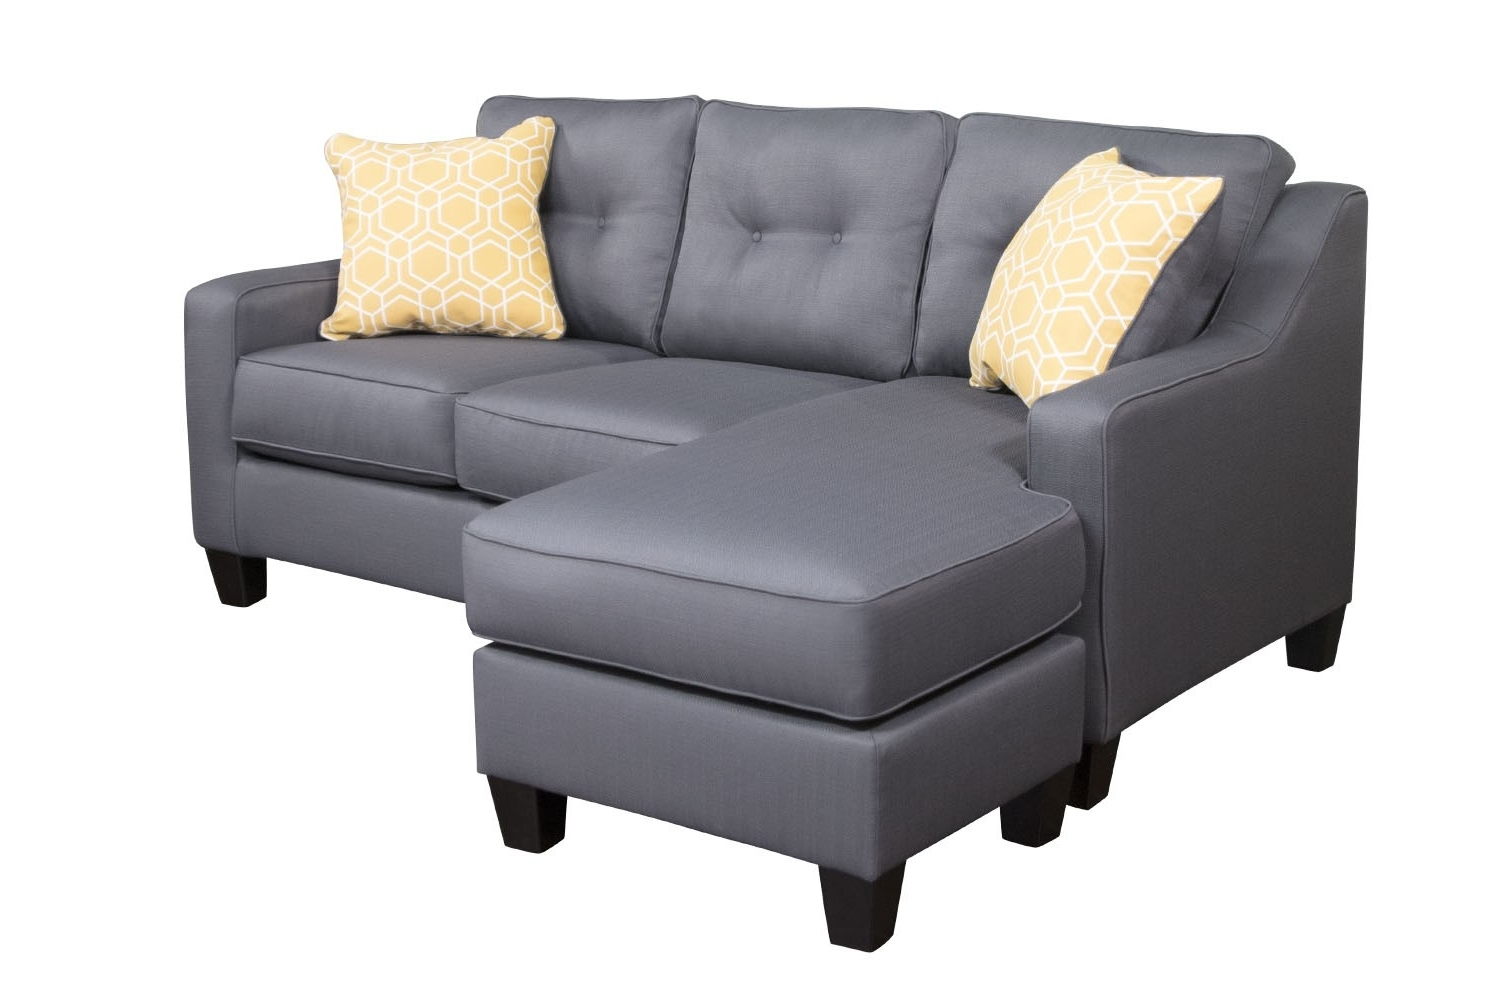 Aldie Gray Sofa Chaise Sleeper (View 2 of 15)